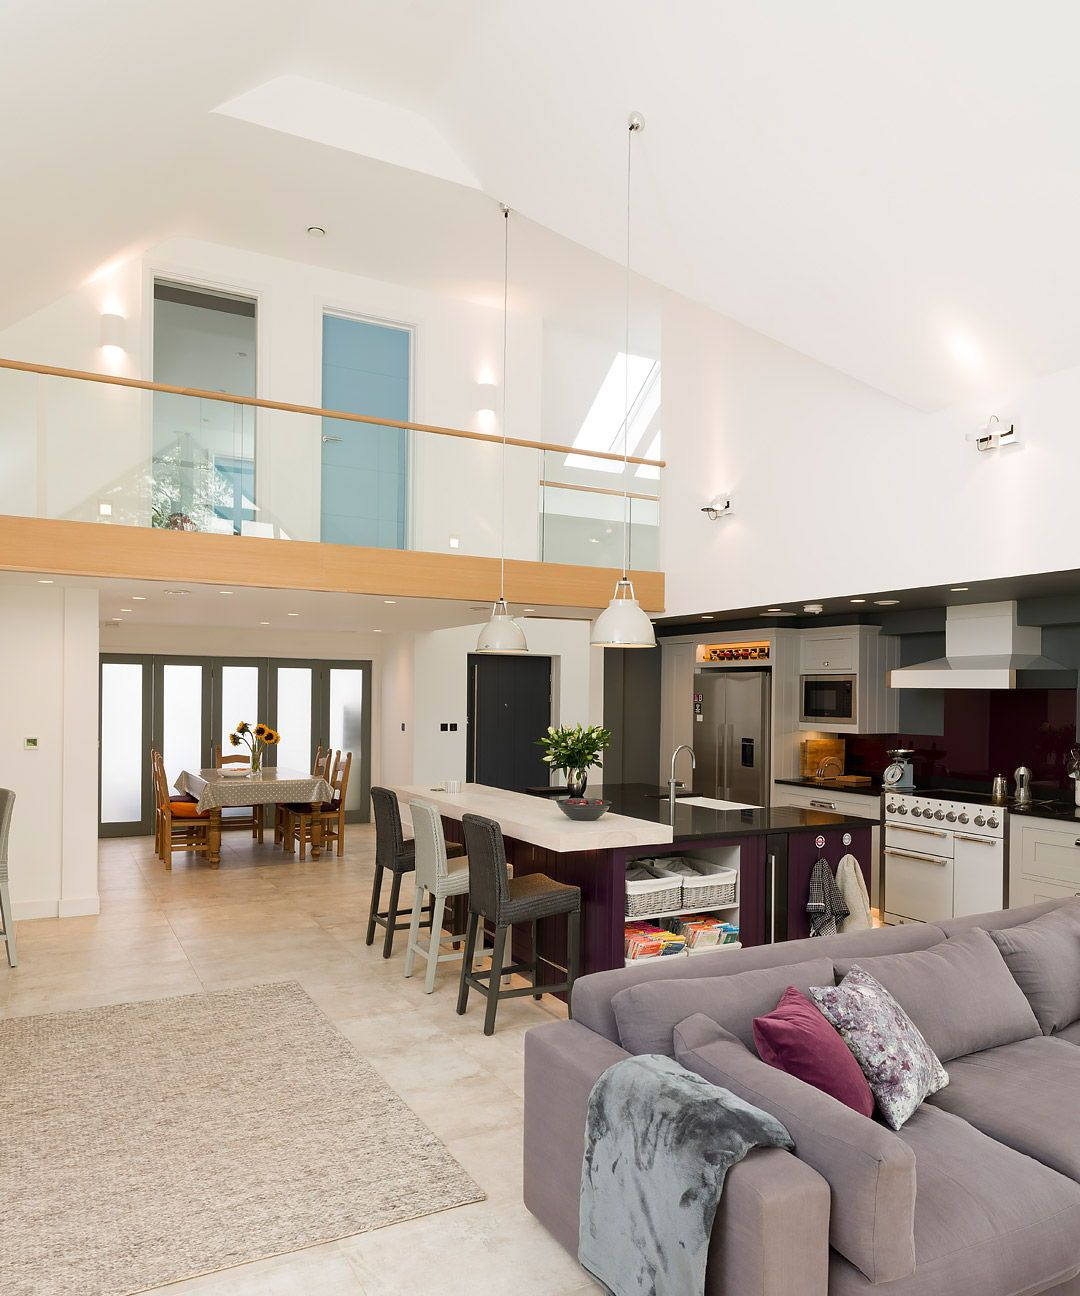 Open Plan Living Area Ideas Building Your Own Home And The Cost Of Building A House Building A Hous Open House Plans Design Your Dream House Open Plan Living